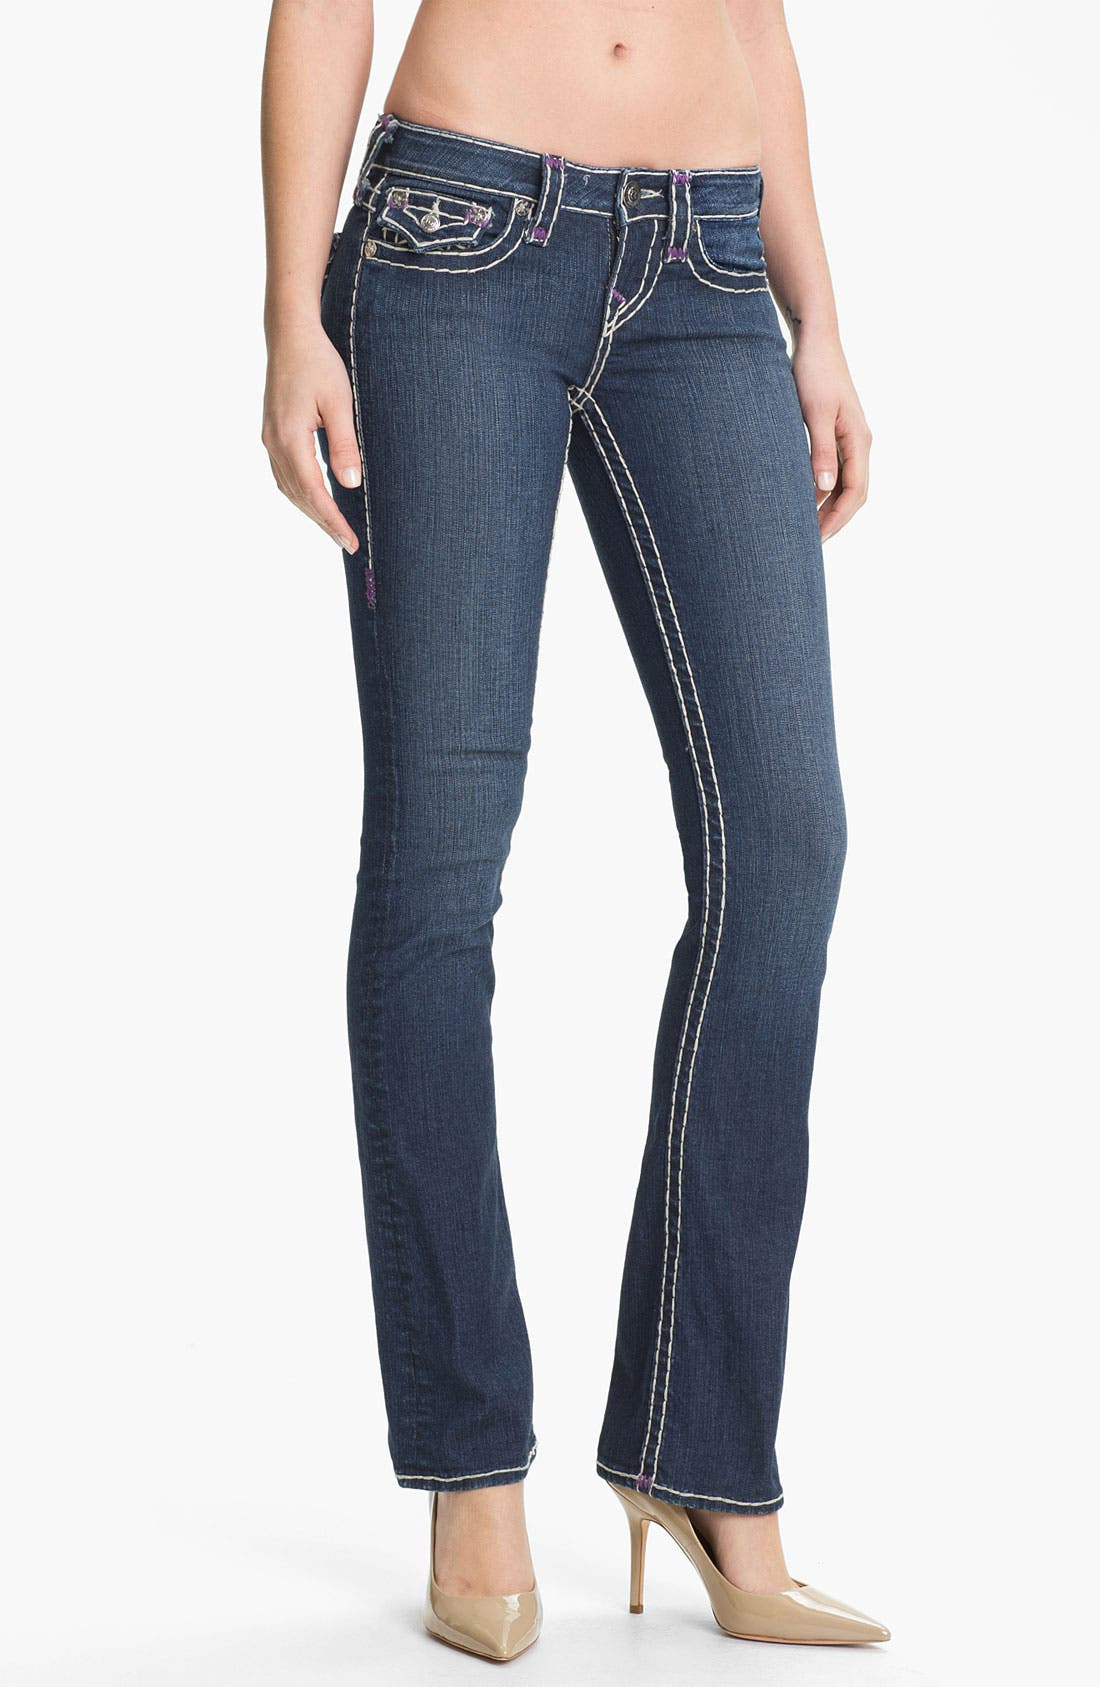 Alternate Image 1 Selected - True Religion Brand Jeans 'Becky' Bootcut Jeans (Memphis)